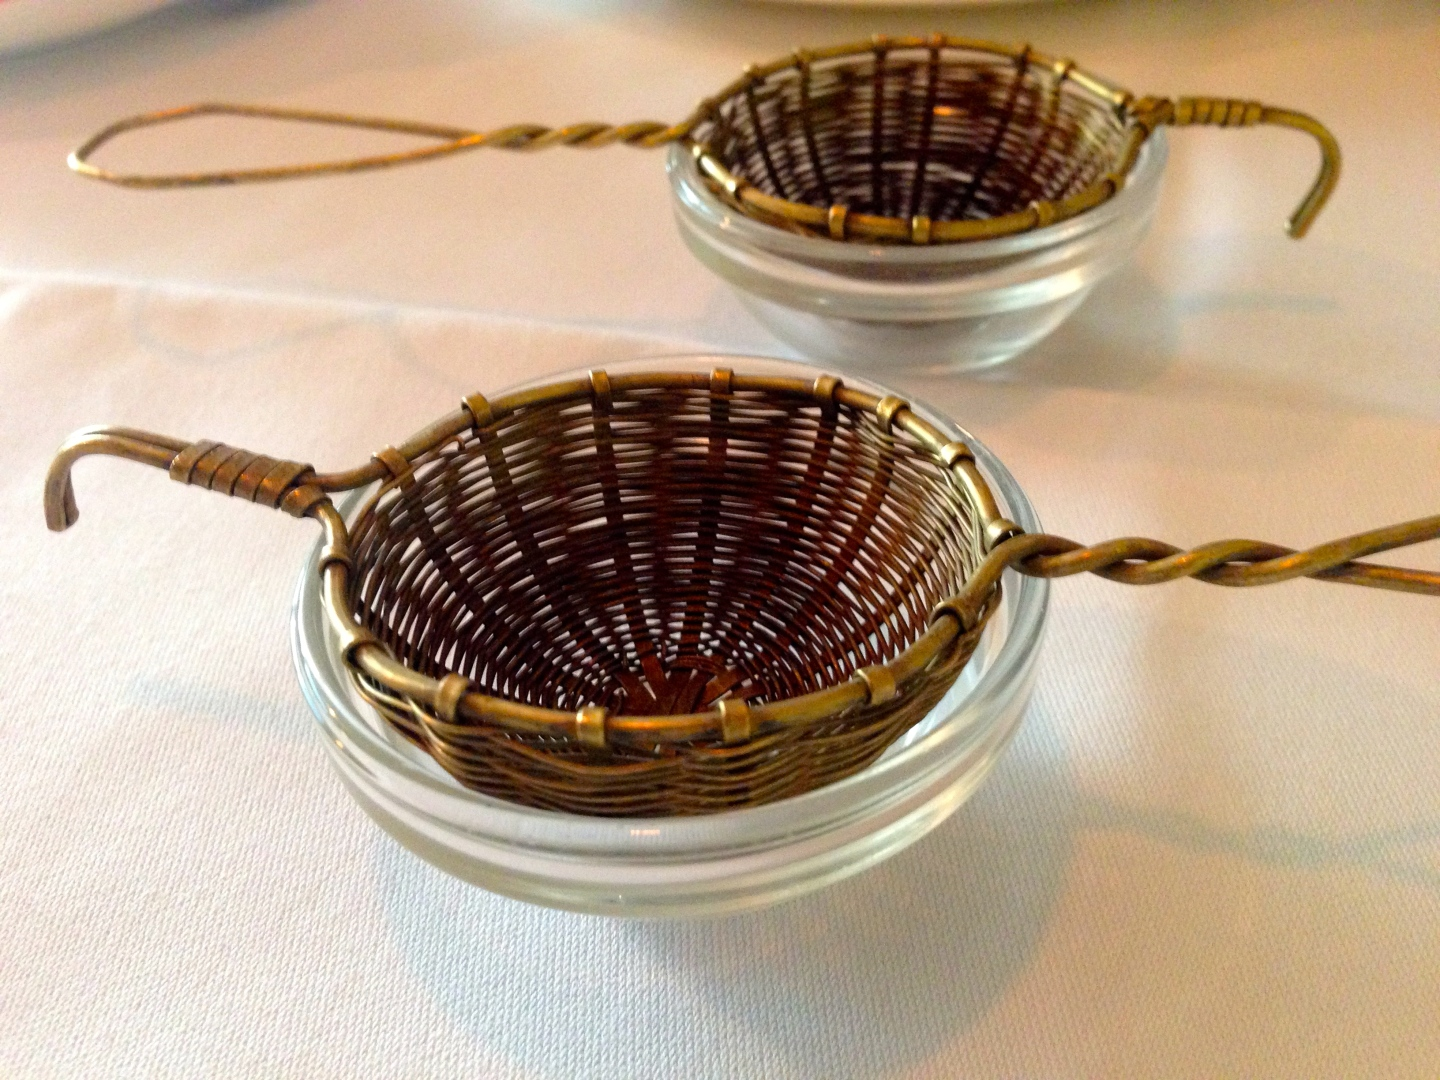 Tea strainers at Asia de Cuba